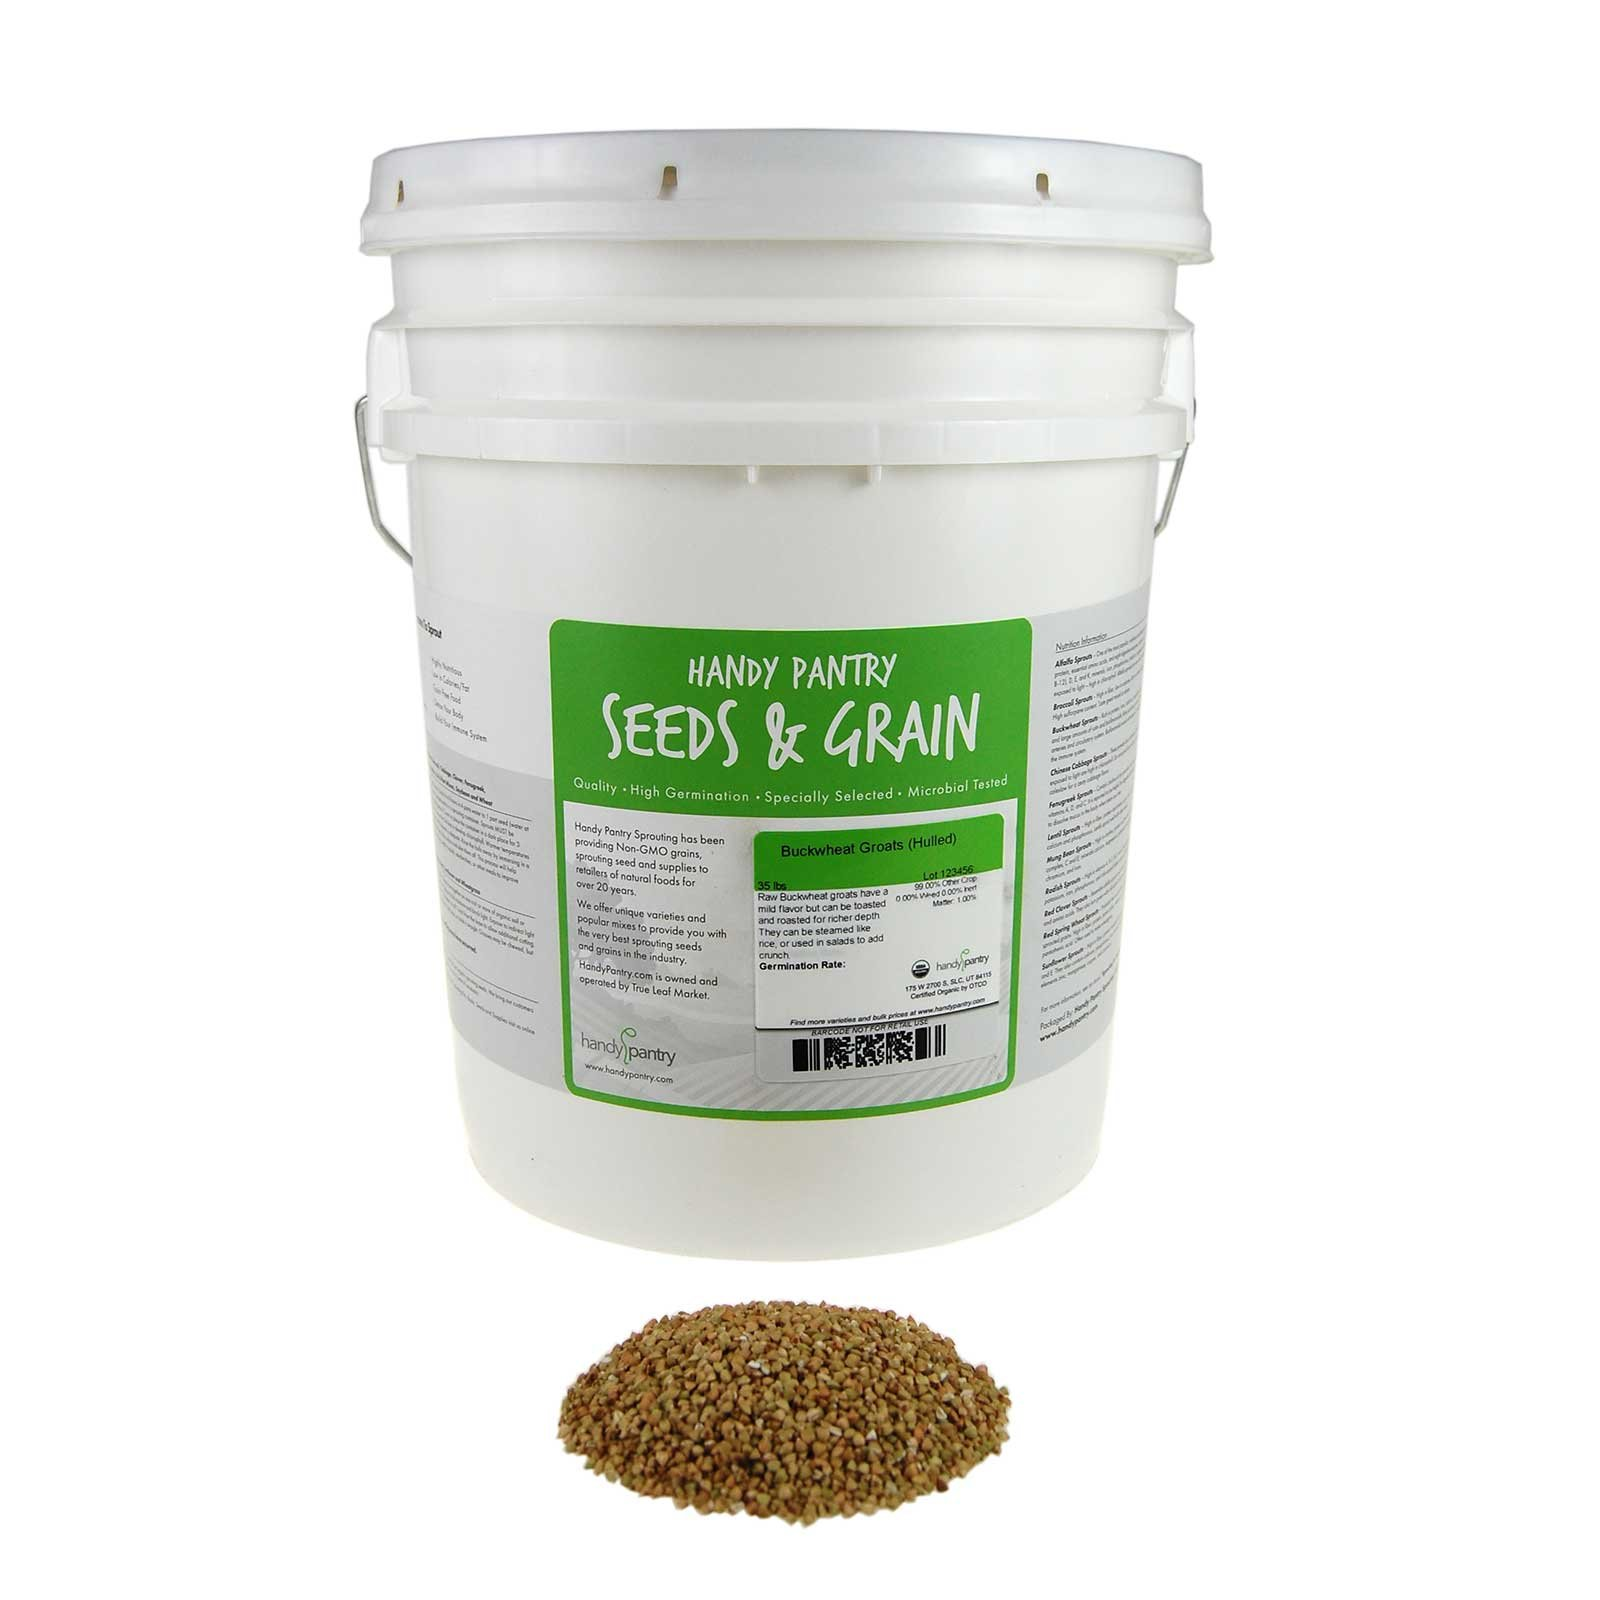 Organic Buck Wheat Groats- Hulled Buckwheat Seeds- 30 Lbs- Use for Sprouting Seed, Gardening, Planting, Edible Seeds, Emergency Food Storage